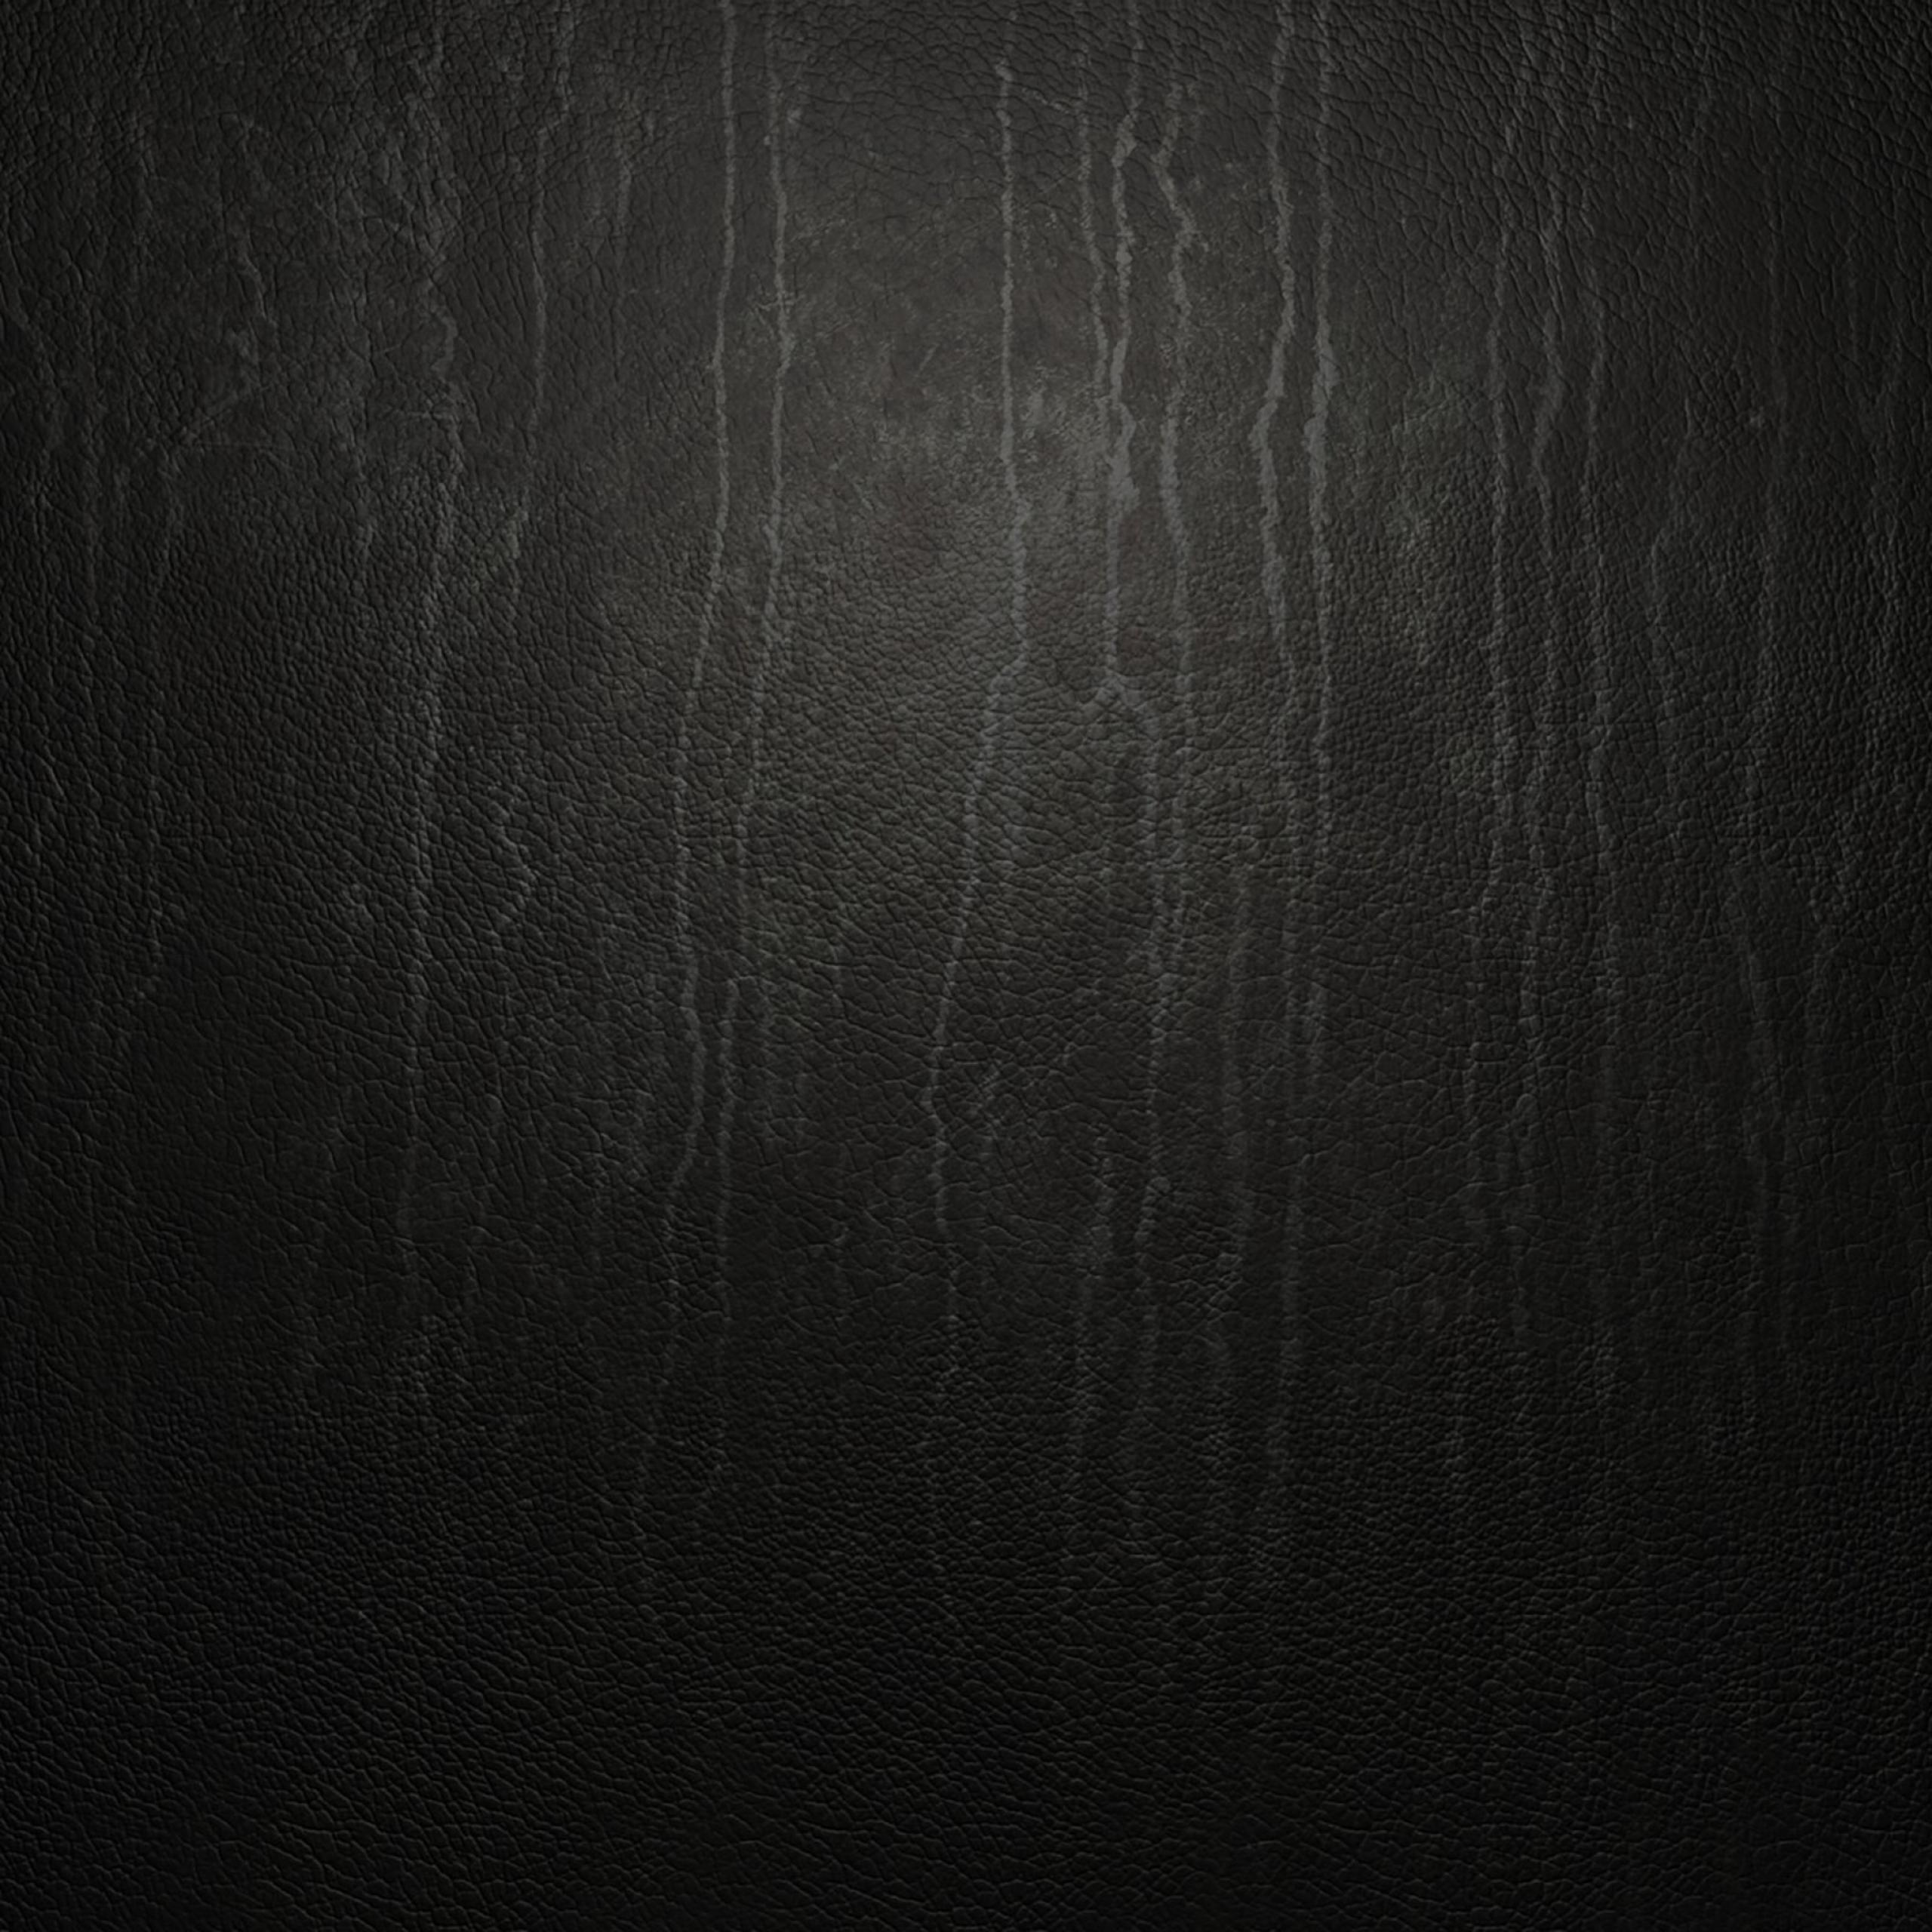 Ipod Wallpaper: Simple Black Wallpaper For Ipad, Iphone, Desktop And